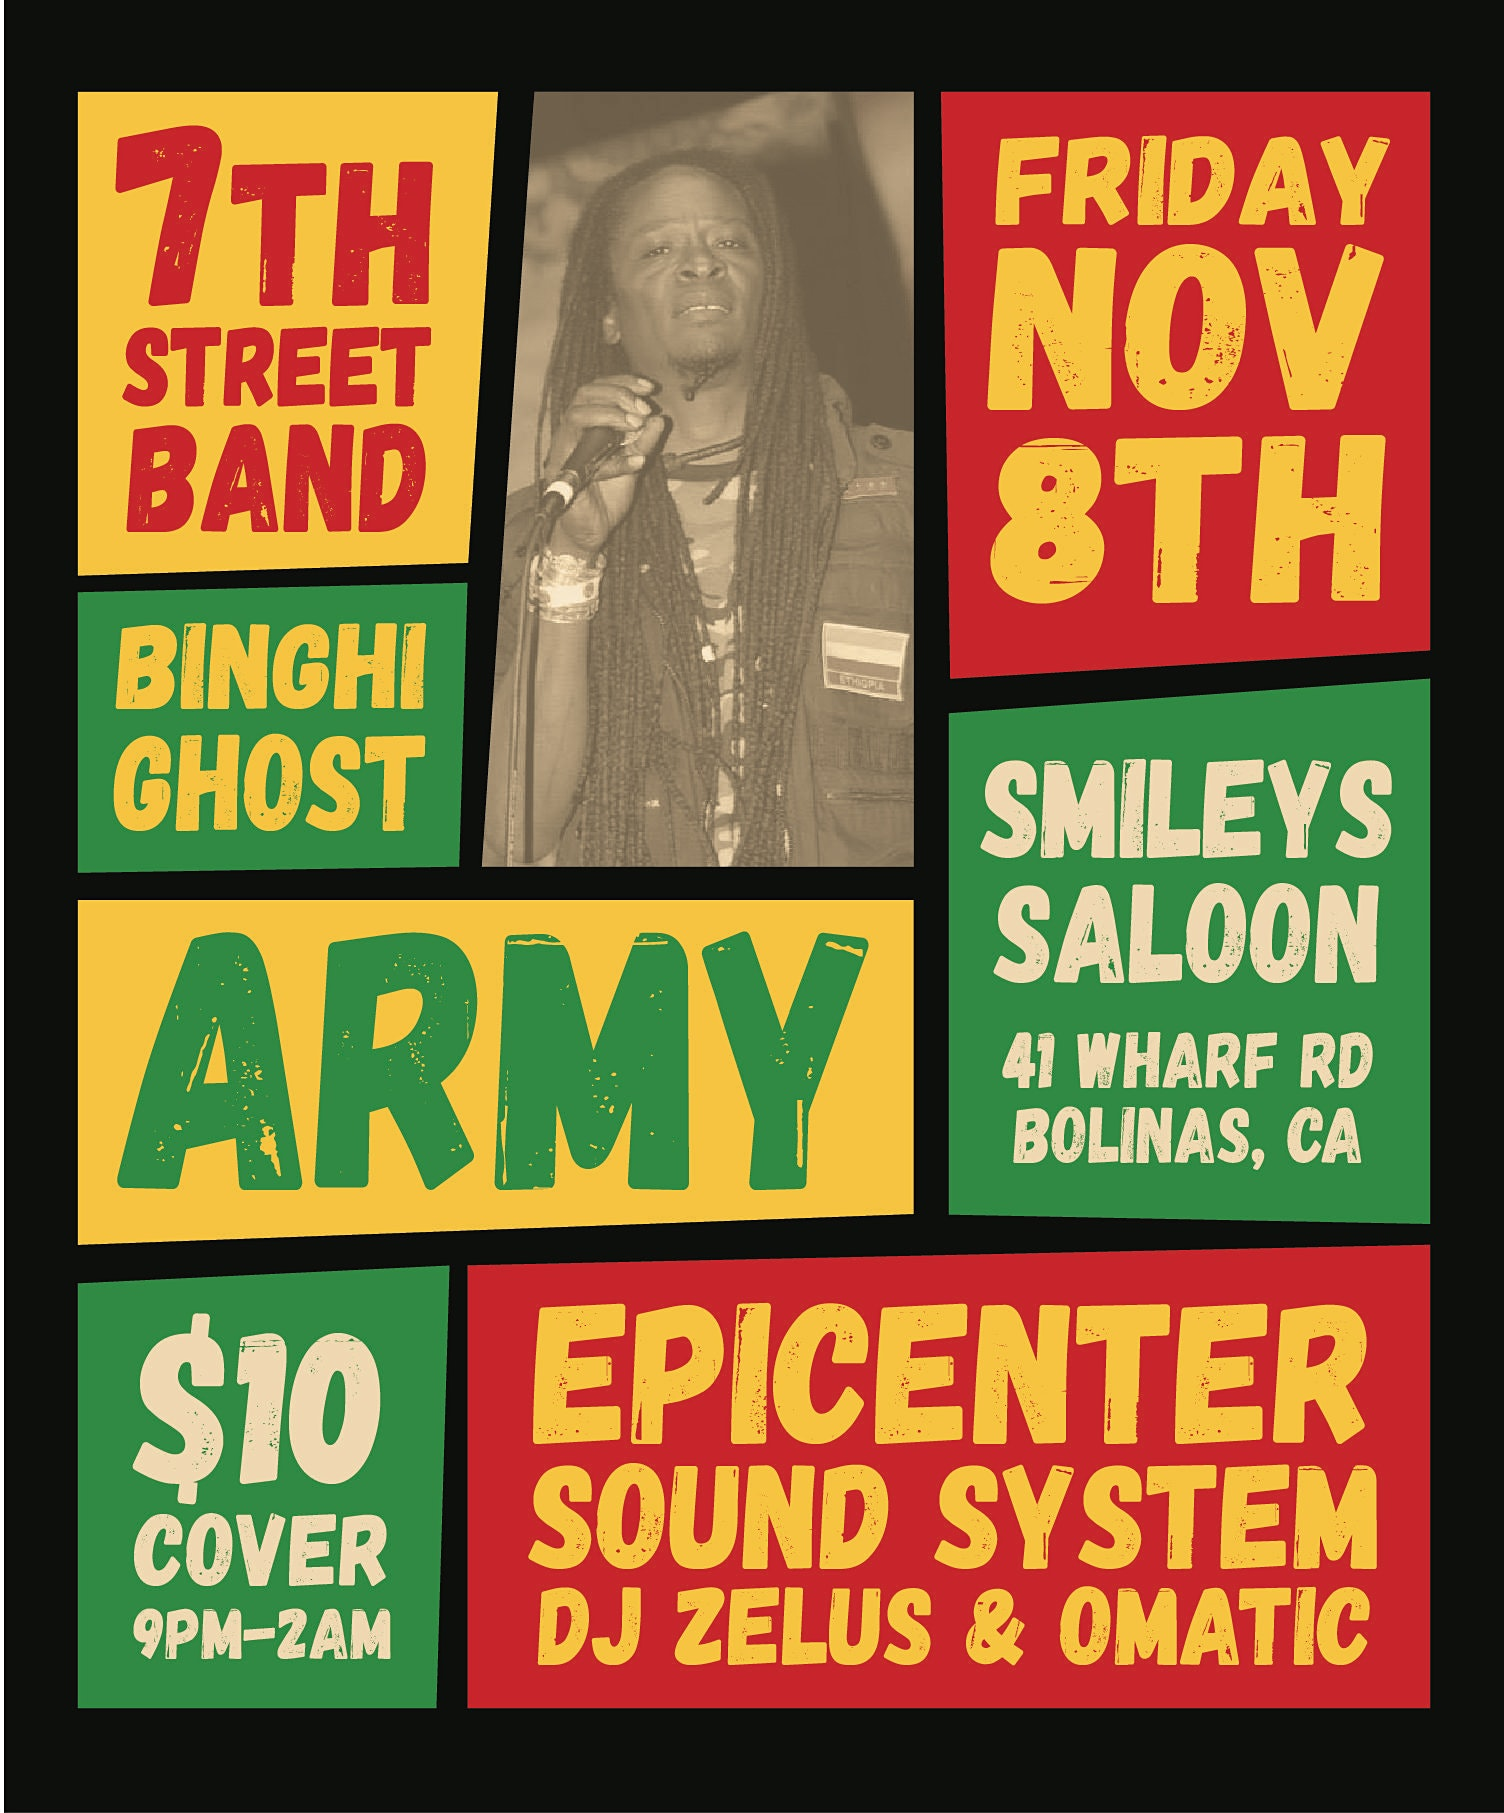 Army, Binghi Ghost, 7th Street Band, Epicenter Sound System, DJ Zelus